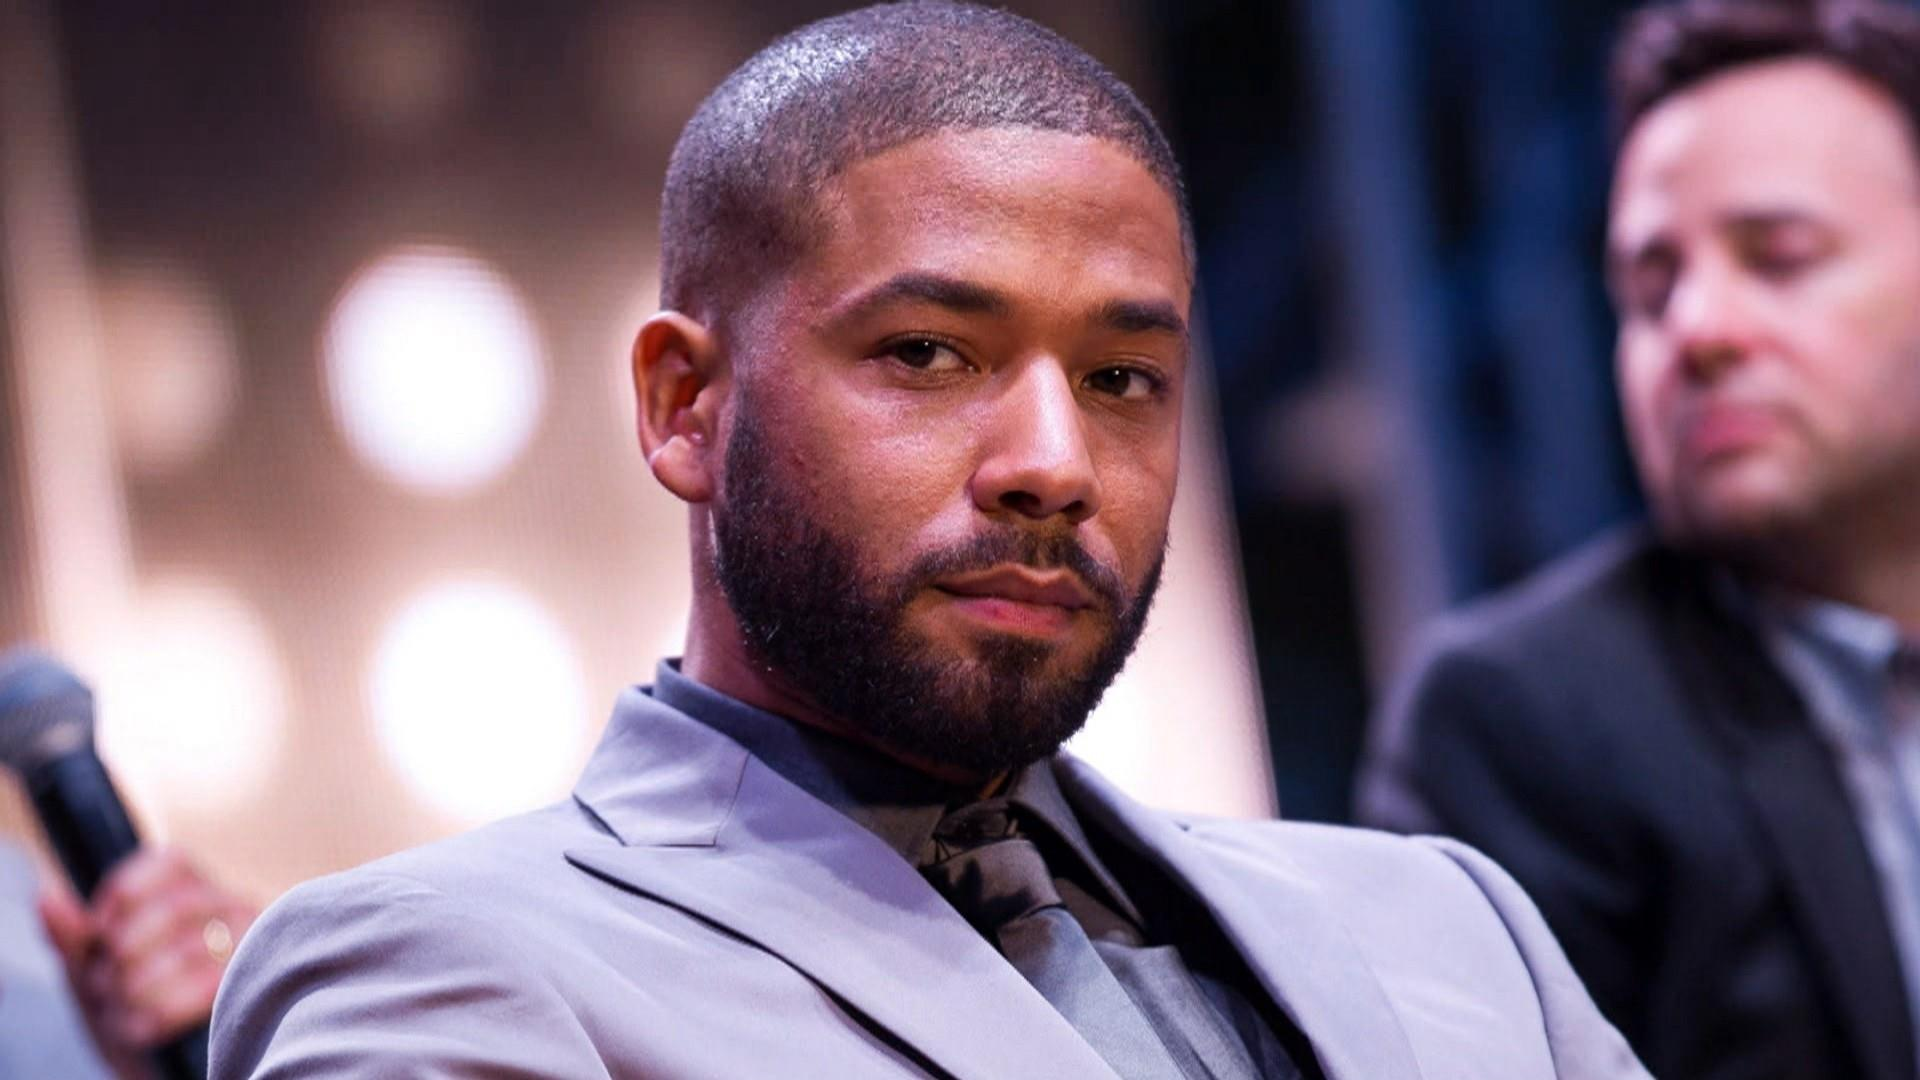 Two men arrested in Jussie Smollett case are released 'due to new evidence,' police say